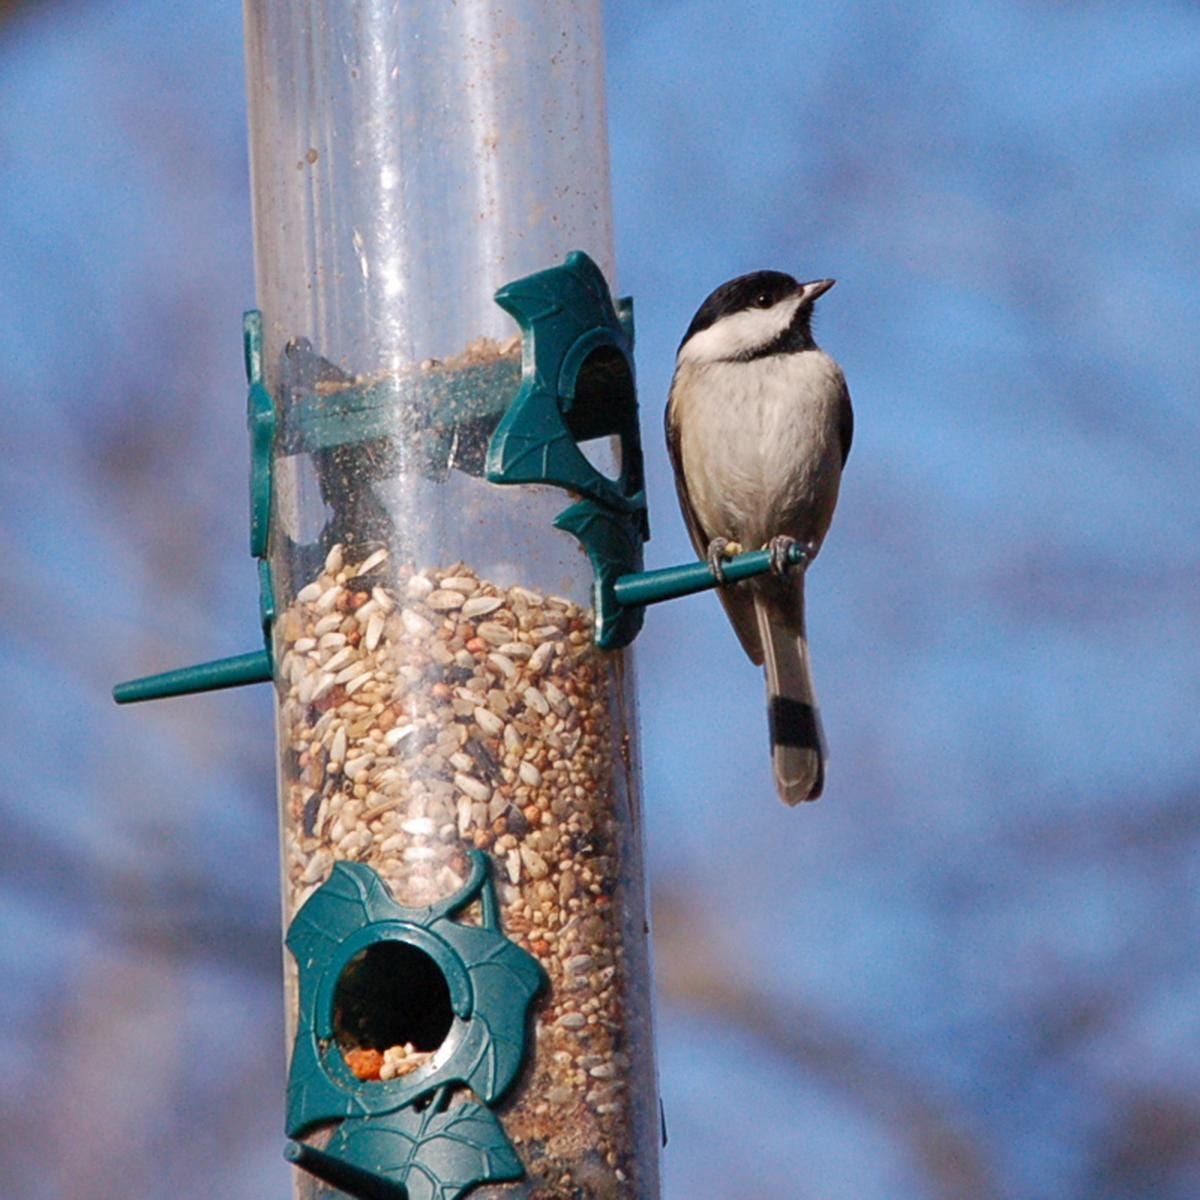 Whitmer vetoes bill to ease restrictions on feeding birds